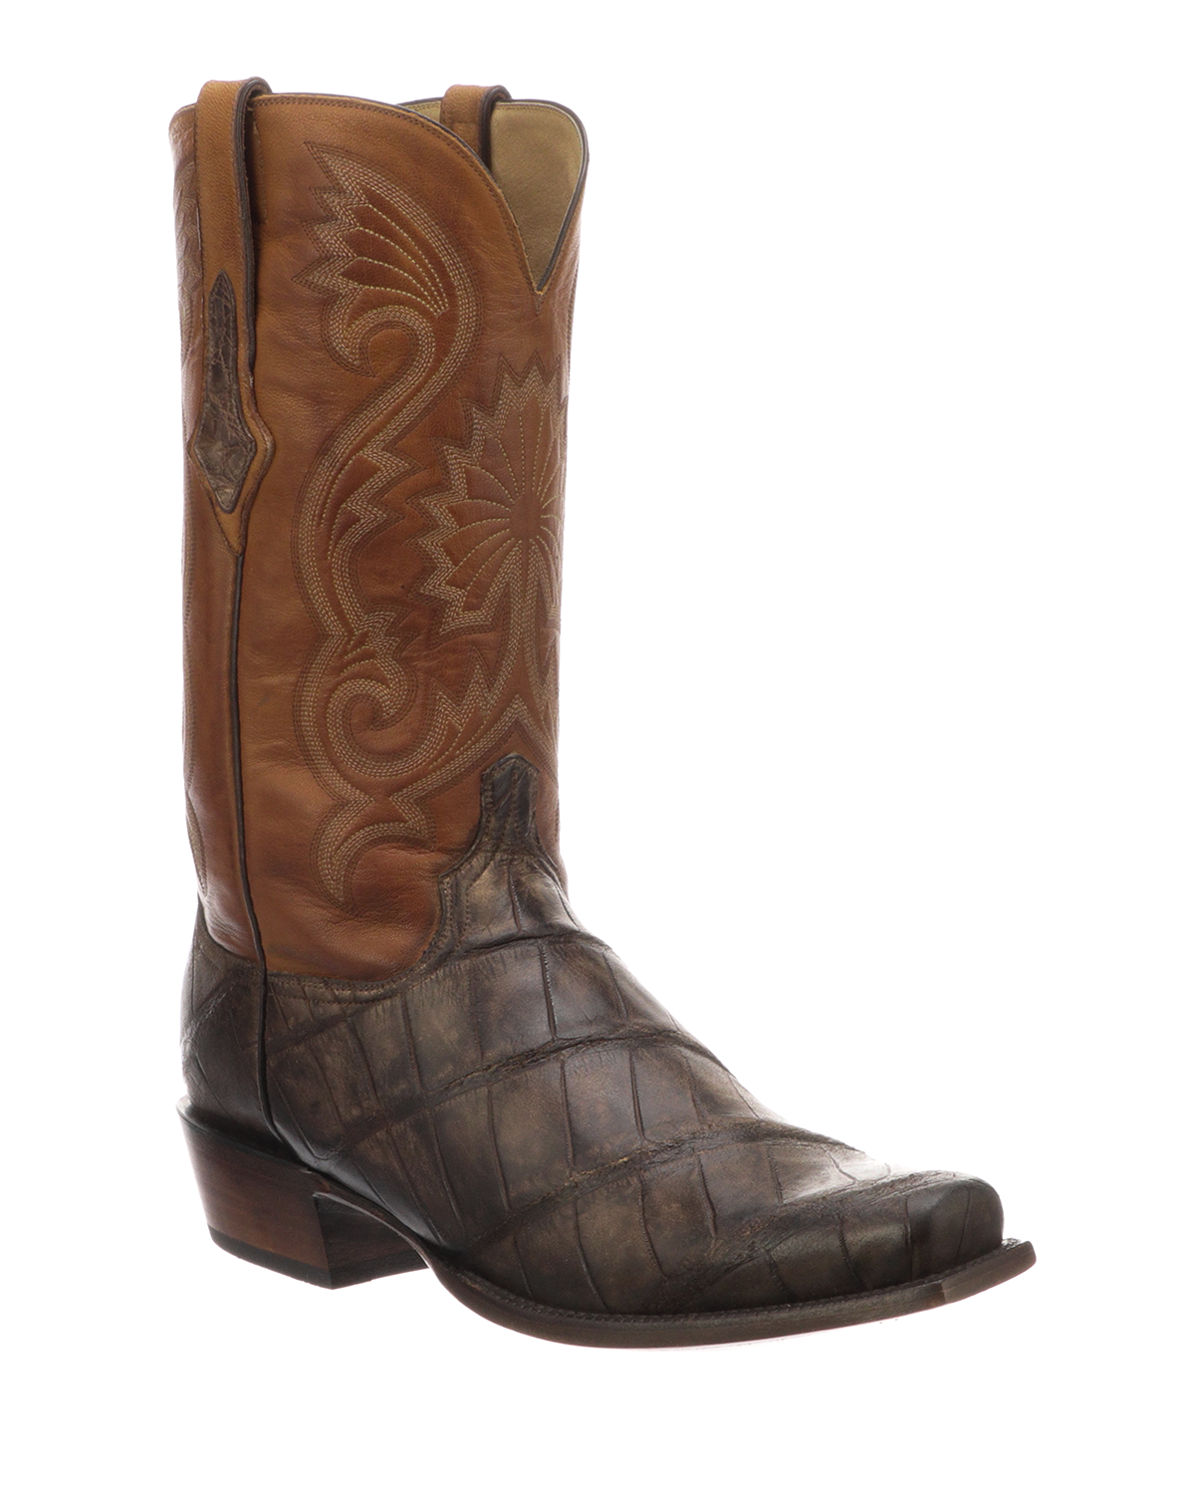 87930f4f78b Men's Rio Gator Leather Western Cowboy Boots